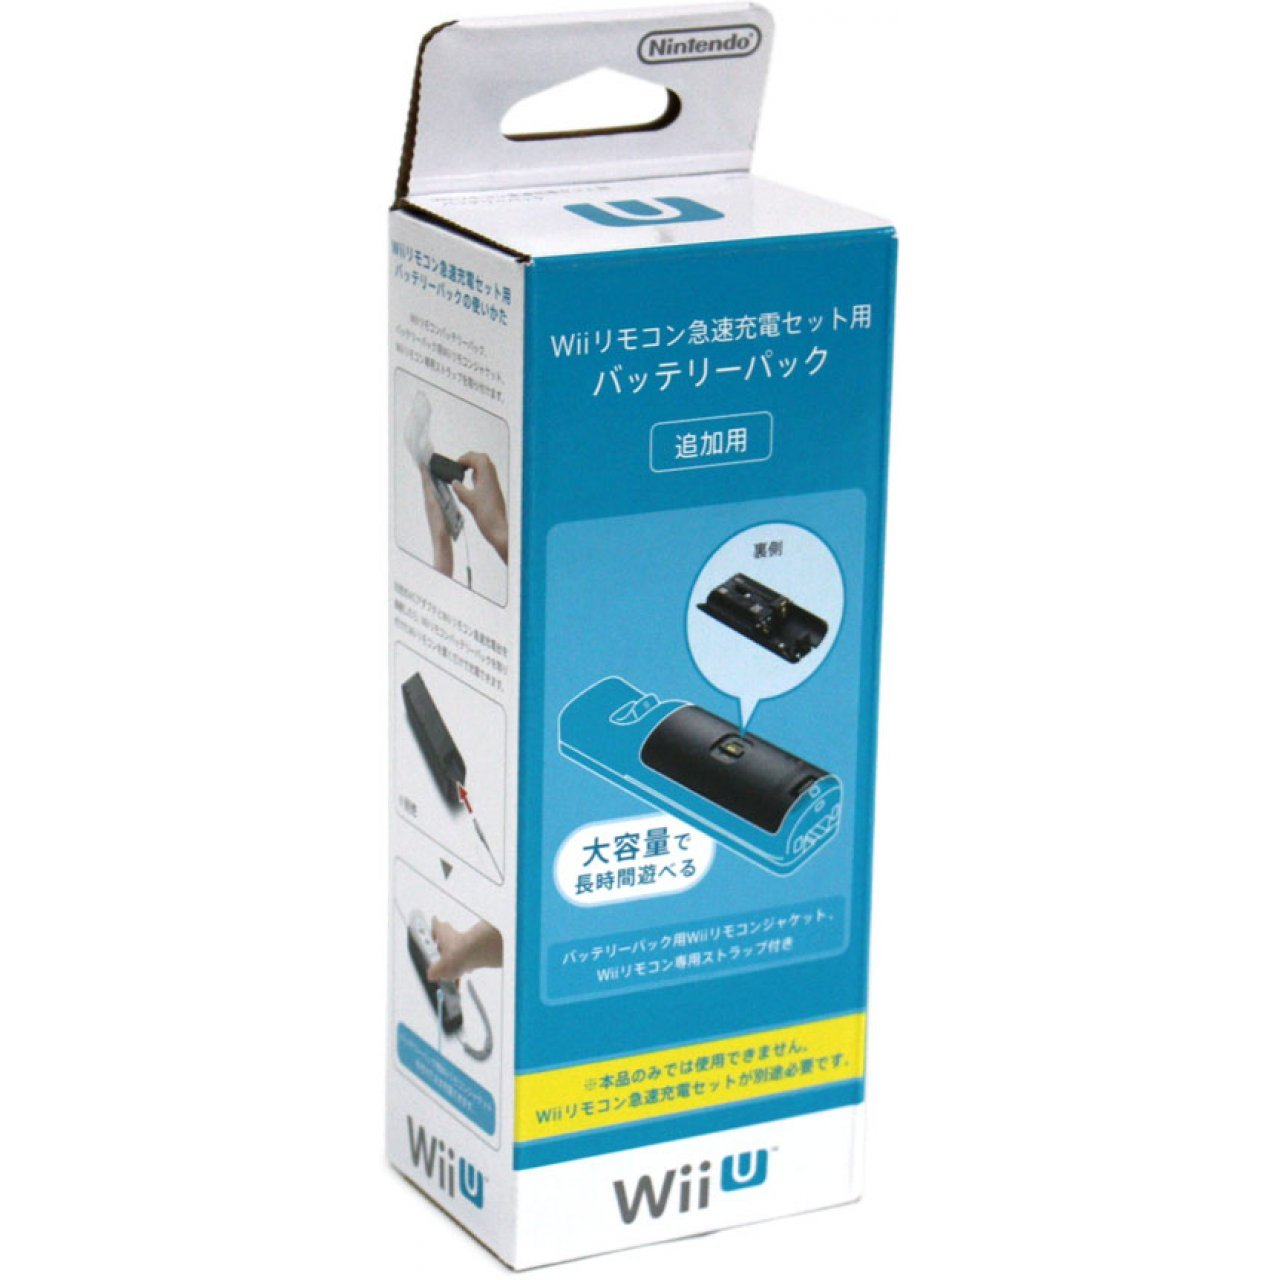 how to play minecraft wii u with wii remote